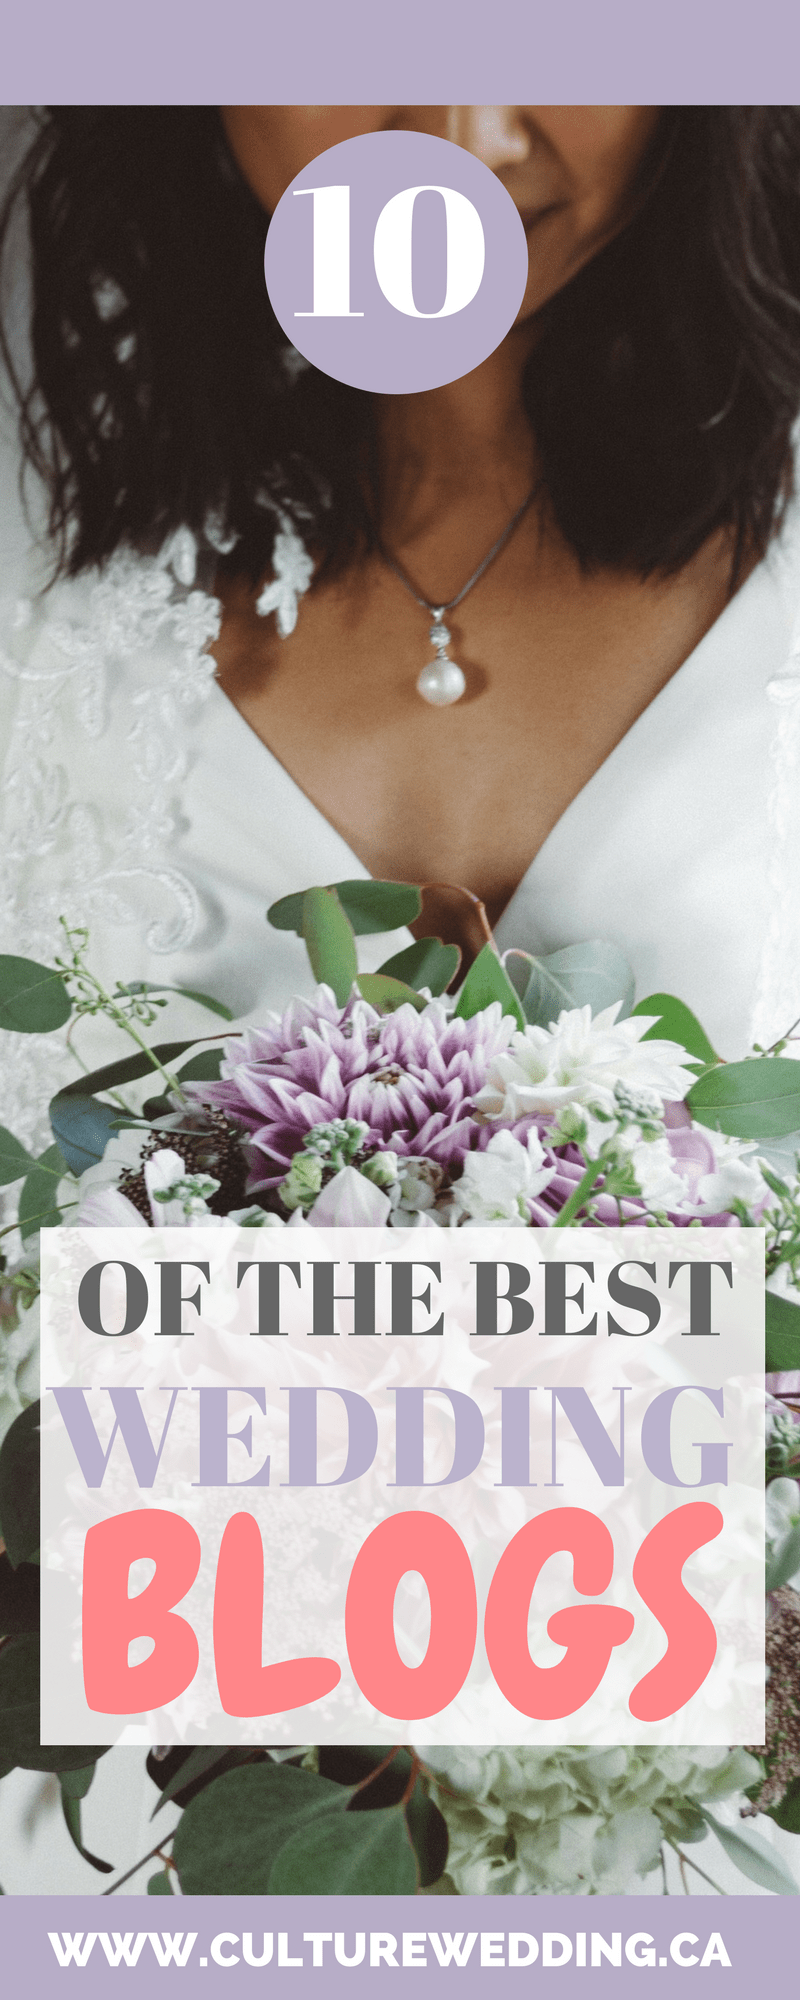 The top 10 wedding blogs to help plan your wedding 10 of the best wedding blogs junglespirit